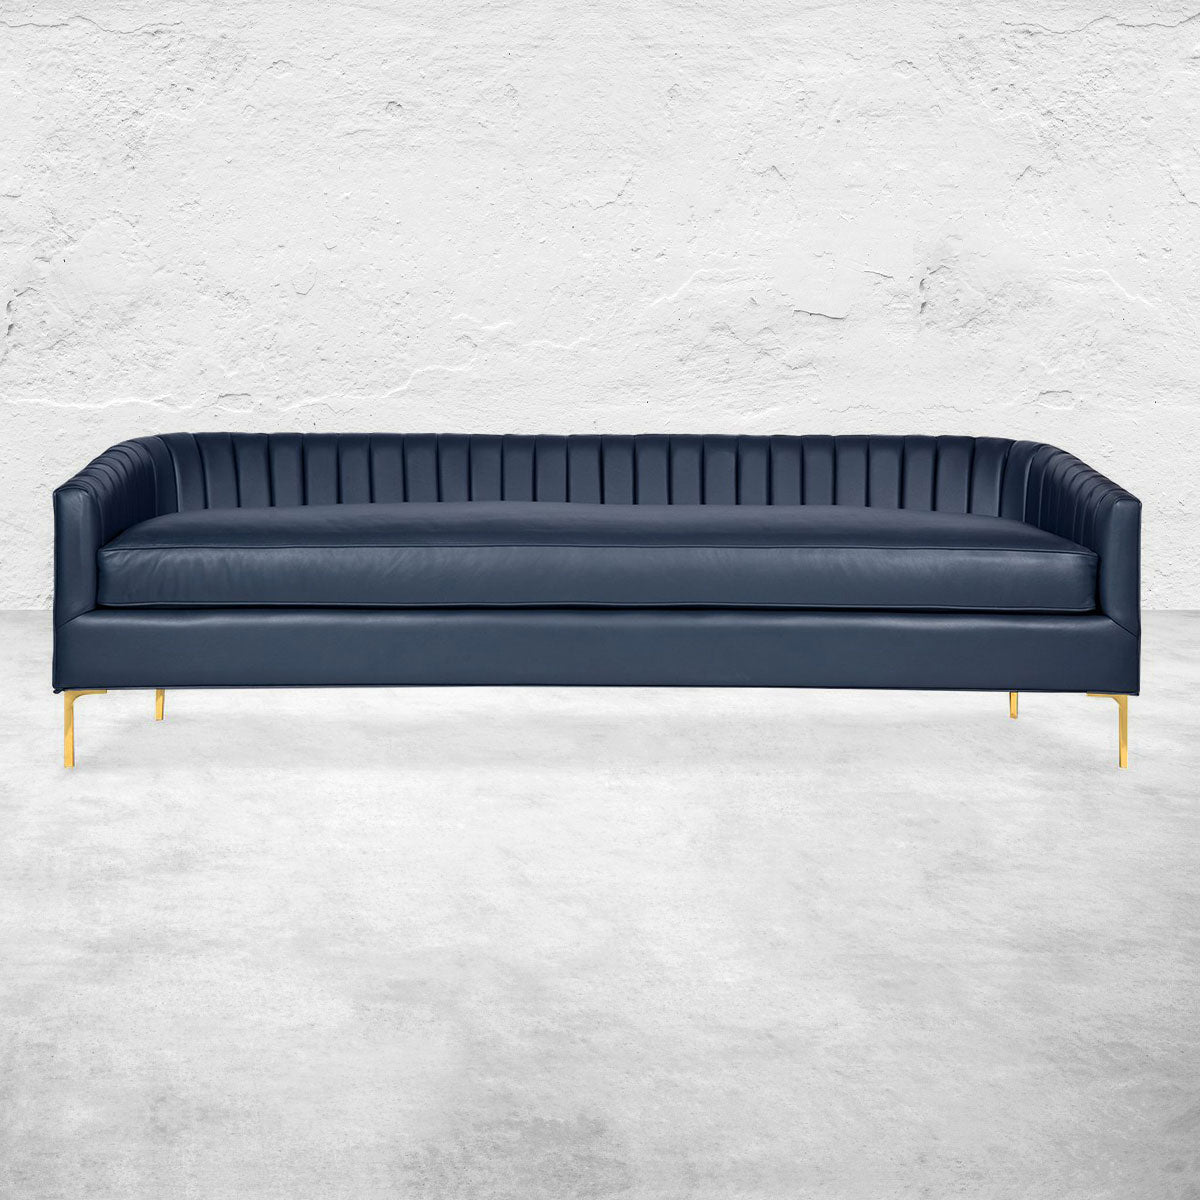 St. Barts Sofa in Channel Tufted Leather